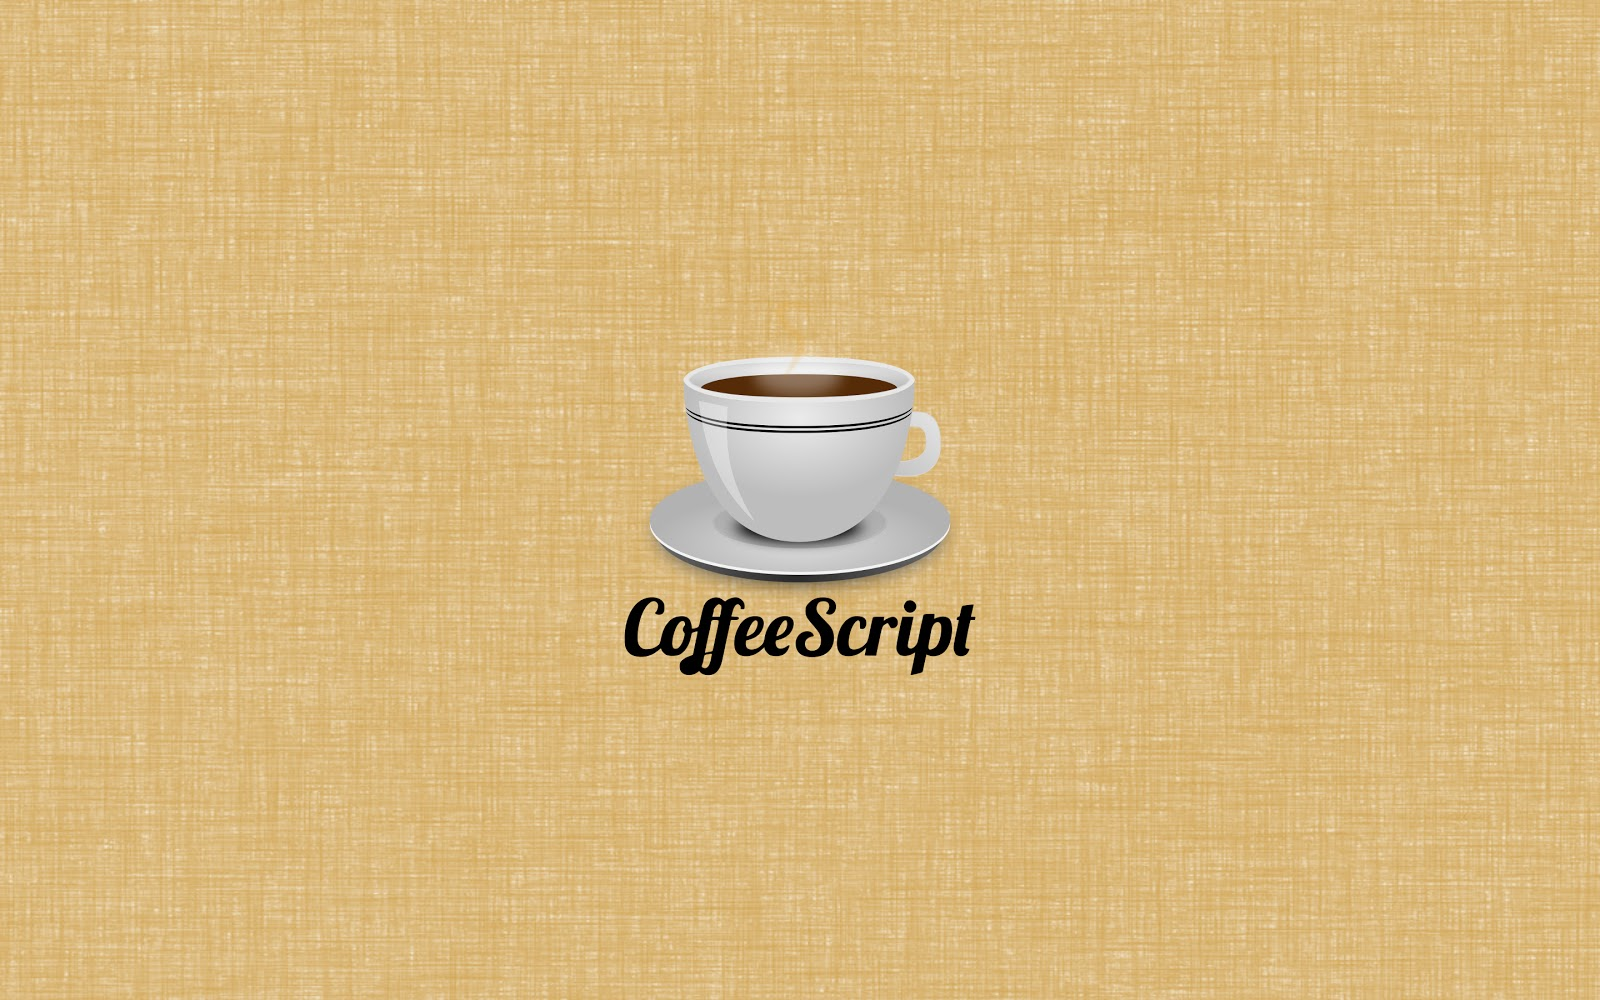 3 Free Programming Books to Learn CoffeeScript